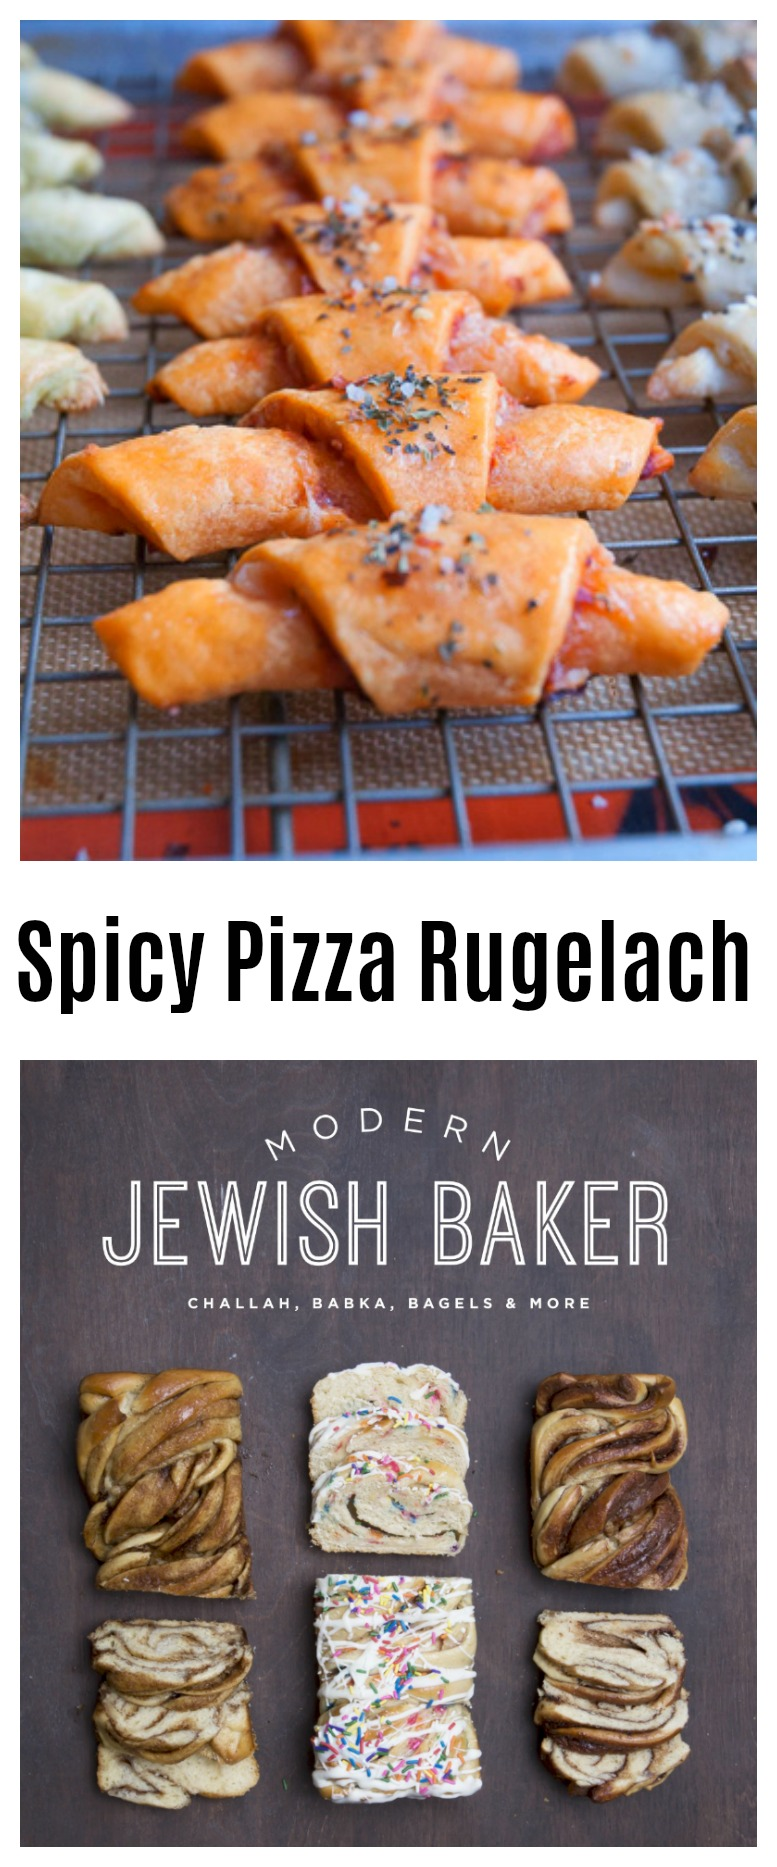 This Spicy Pizza Rugelach recipe, is only one of the many inventive and creative recipes included in Shannon Sarna's first cookbook Modern Jewish Baker.